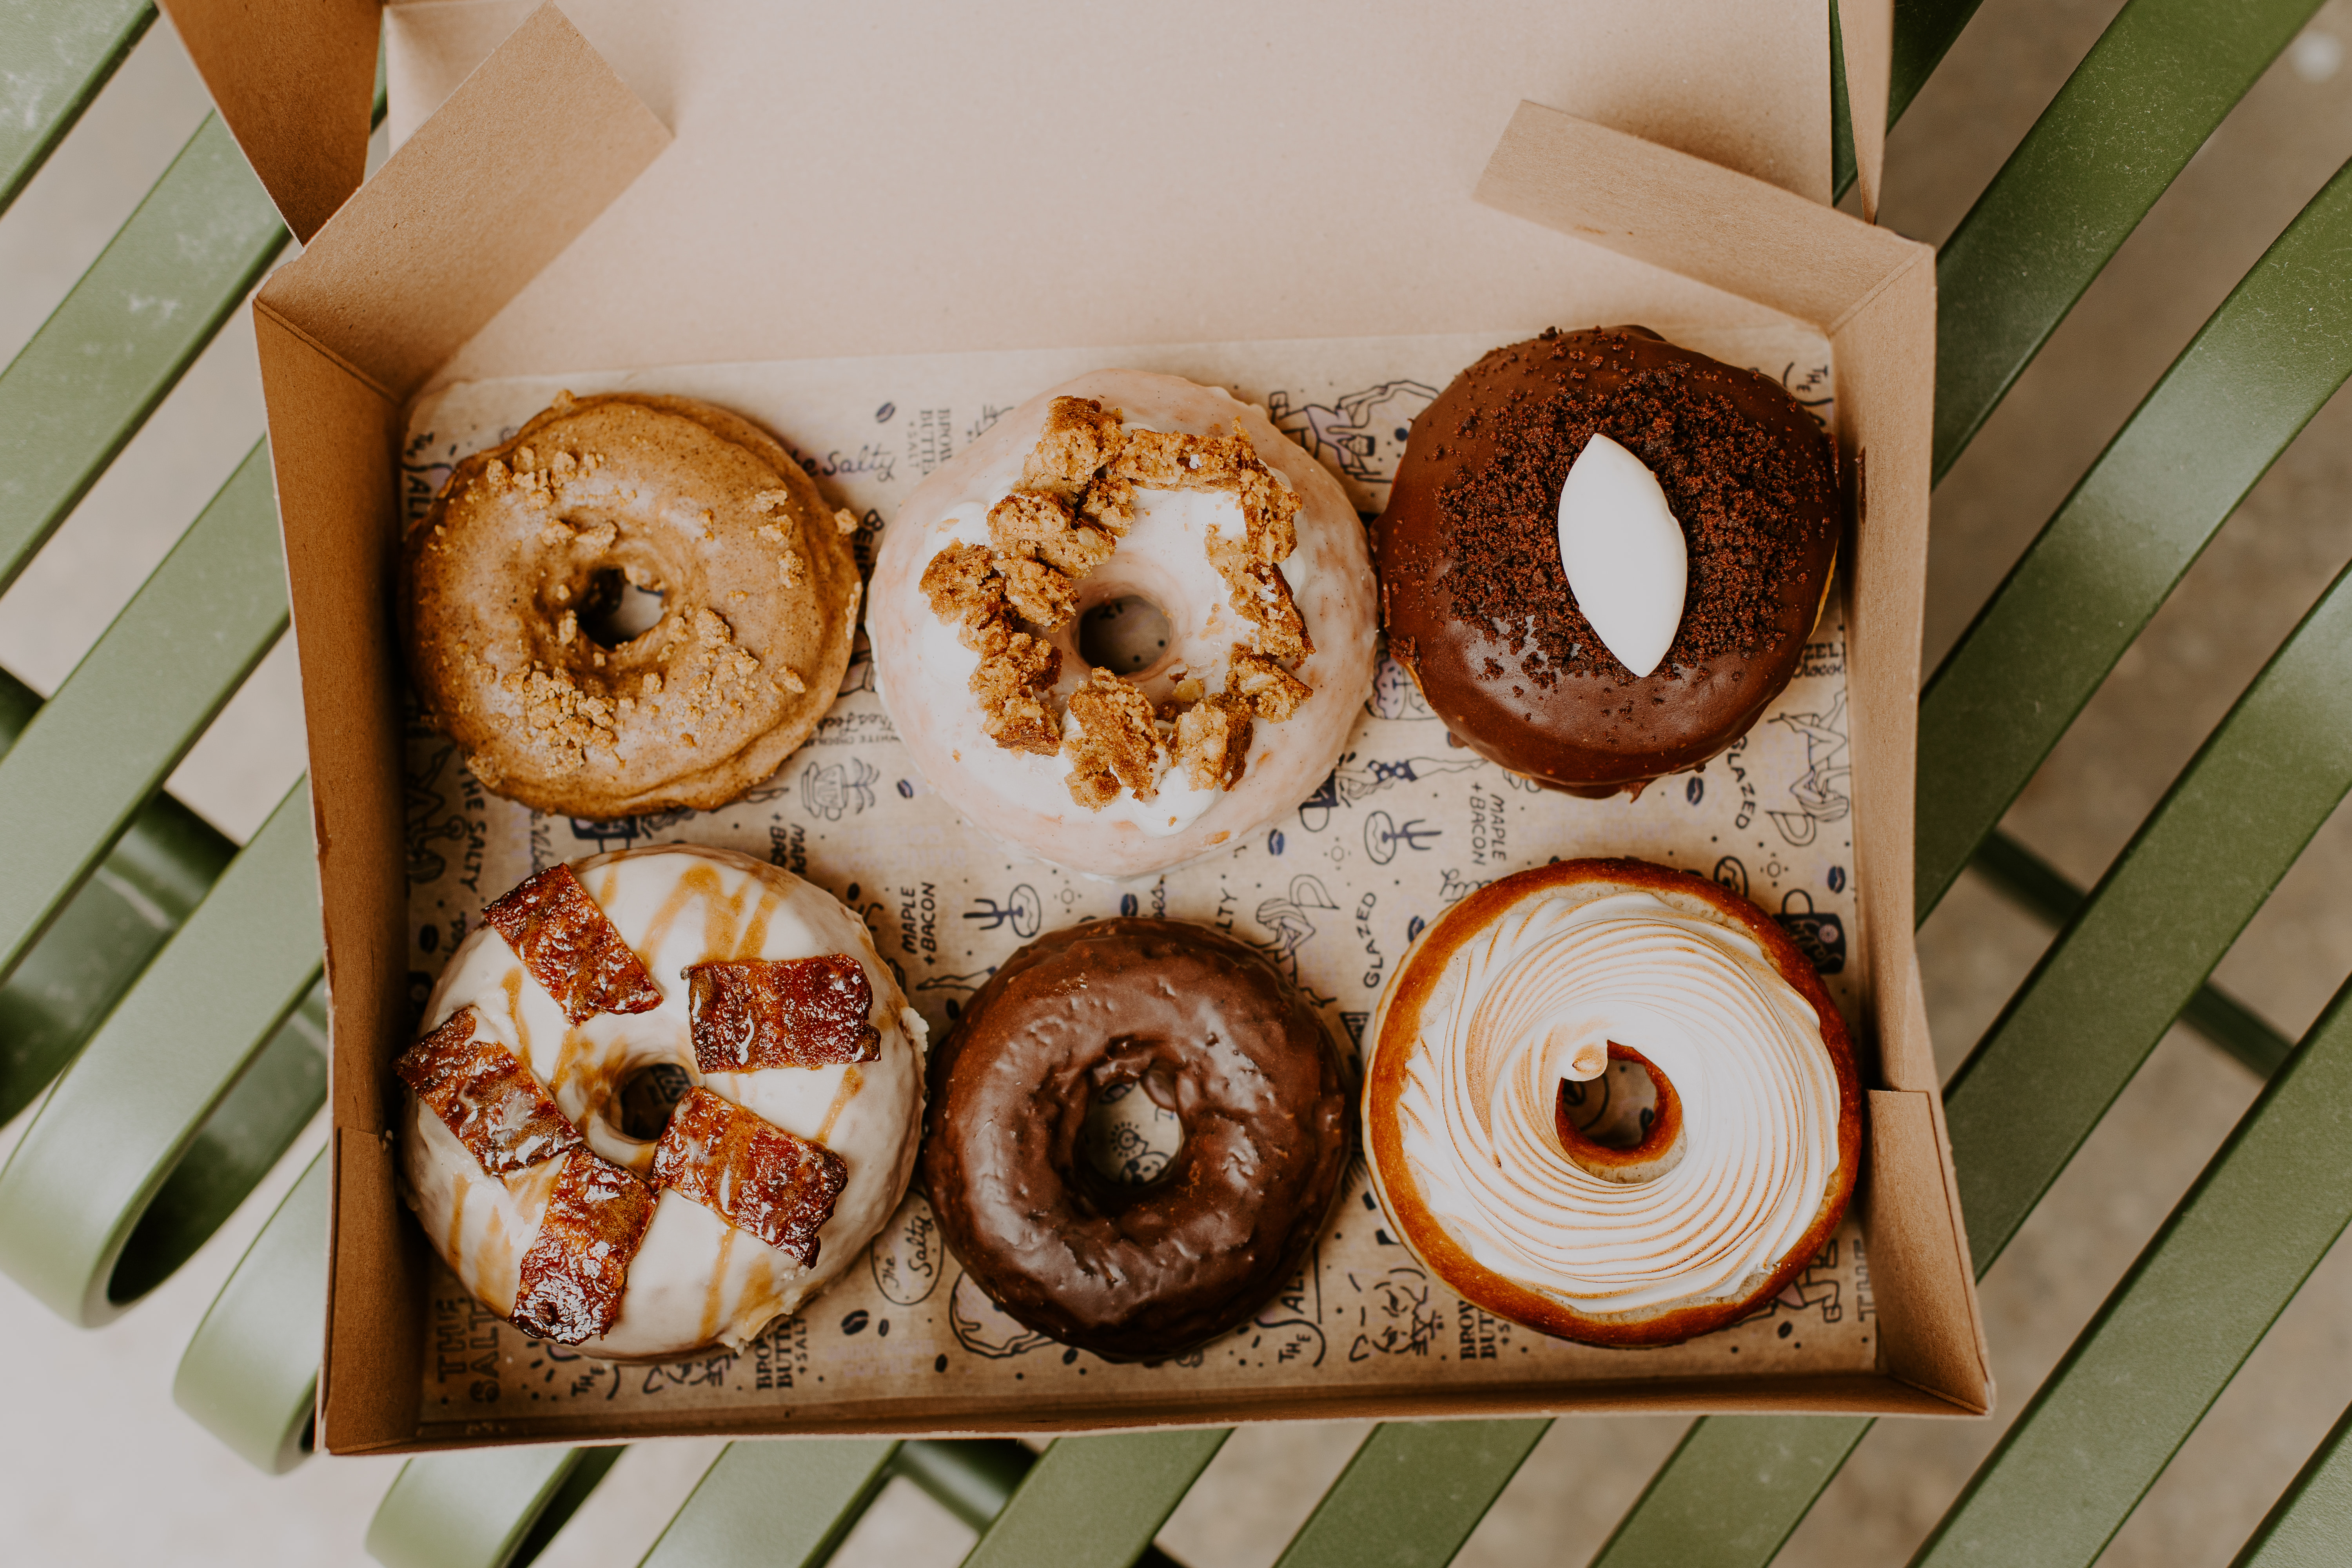 A box of doughnuts, some covered in chocolate, others topped with bacon or cookies